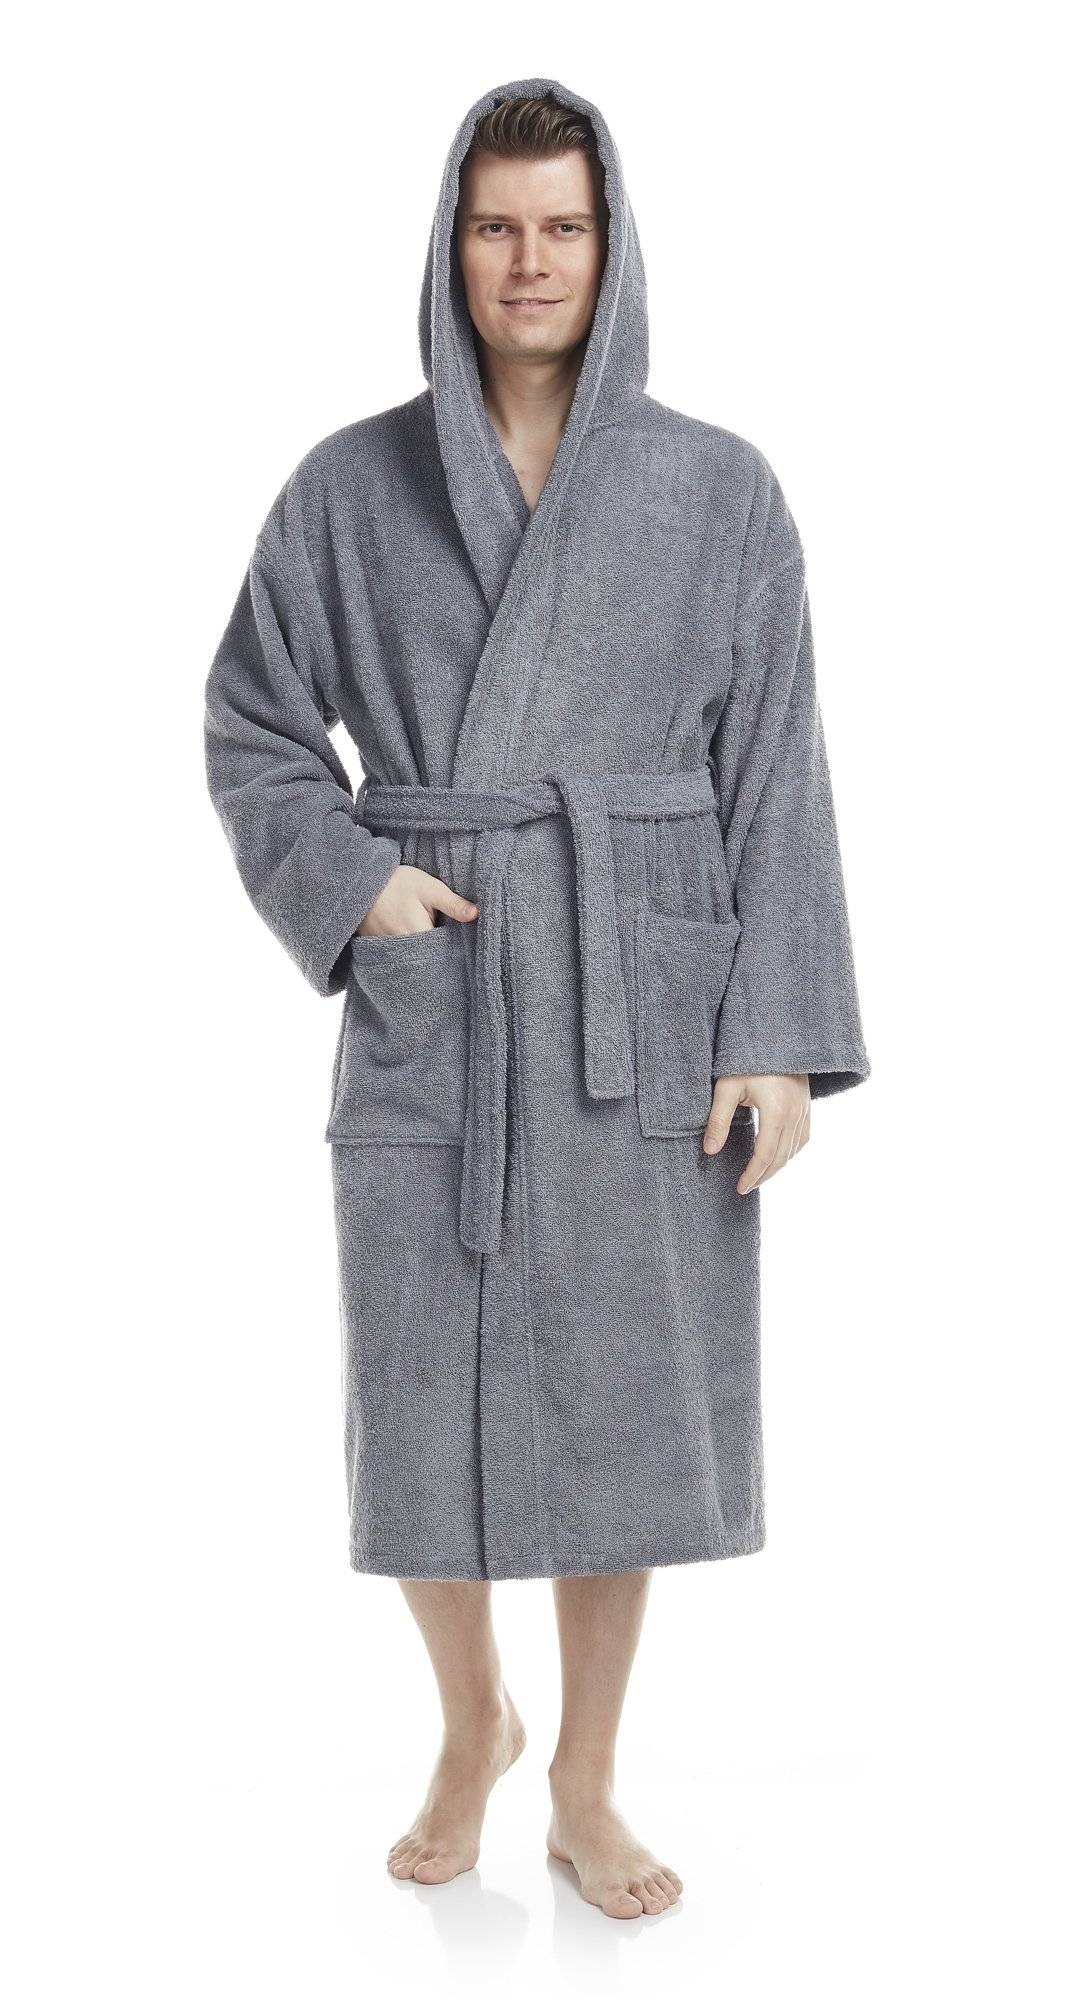 Arus Men's Classic Hooded Bathrobe Turkish Cotton Terry Cloth Robe (XXL,Gray) by Arus